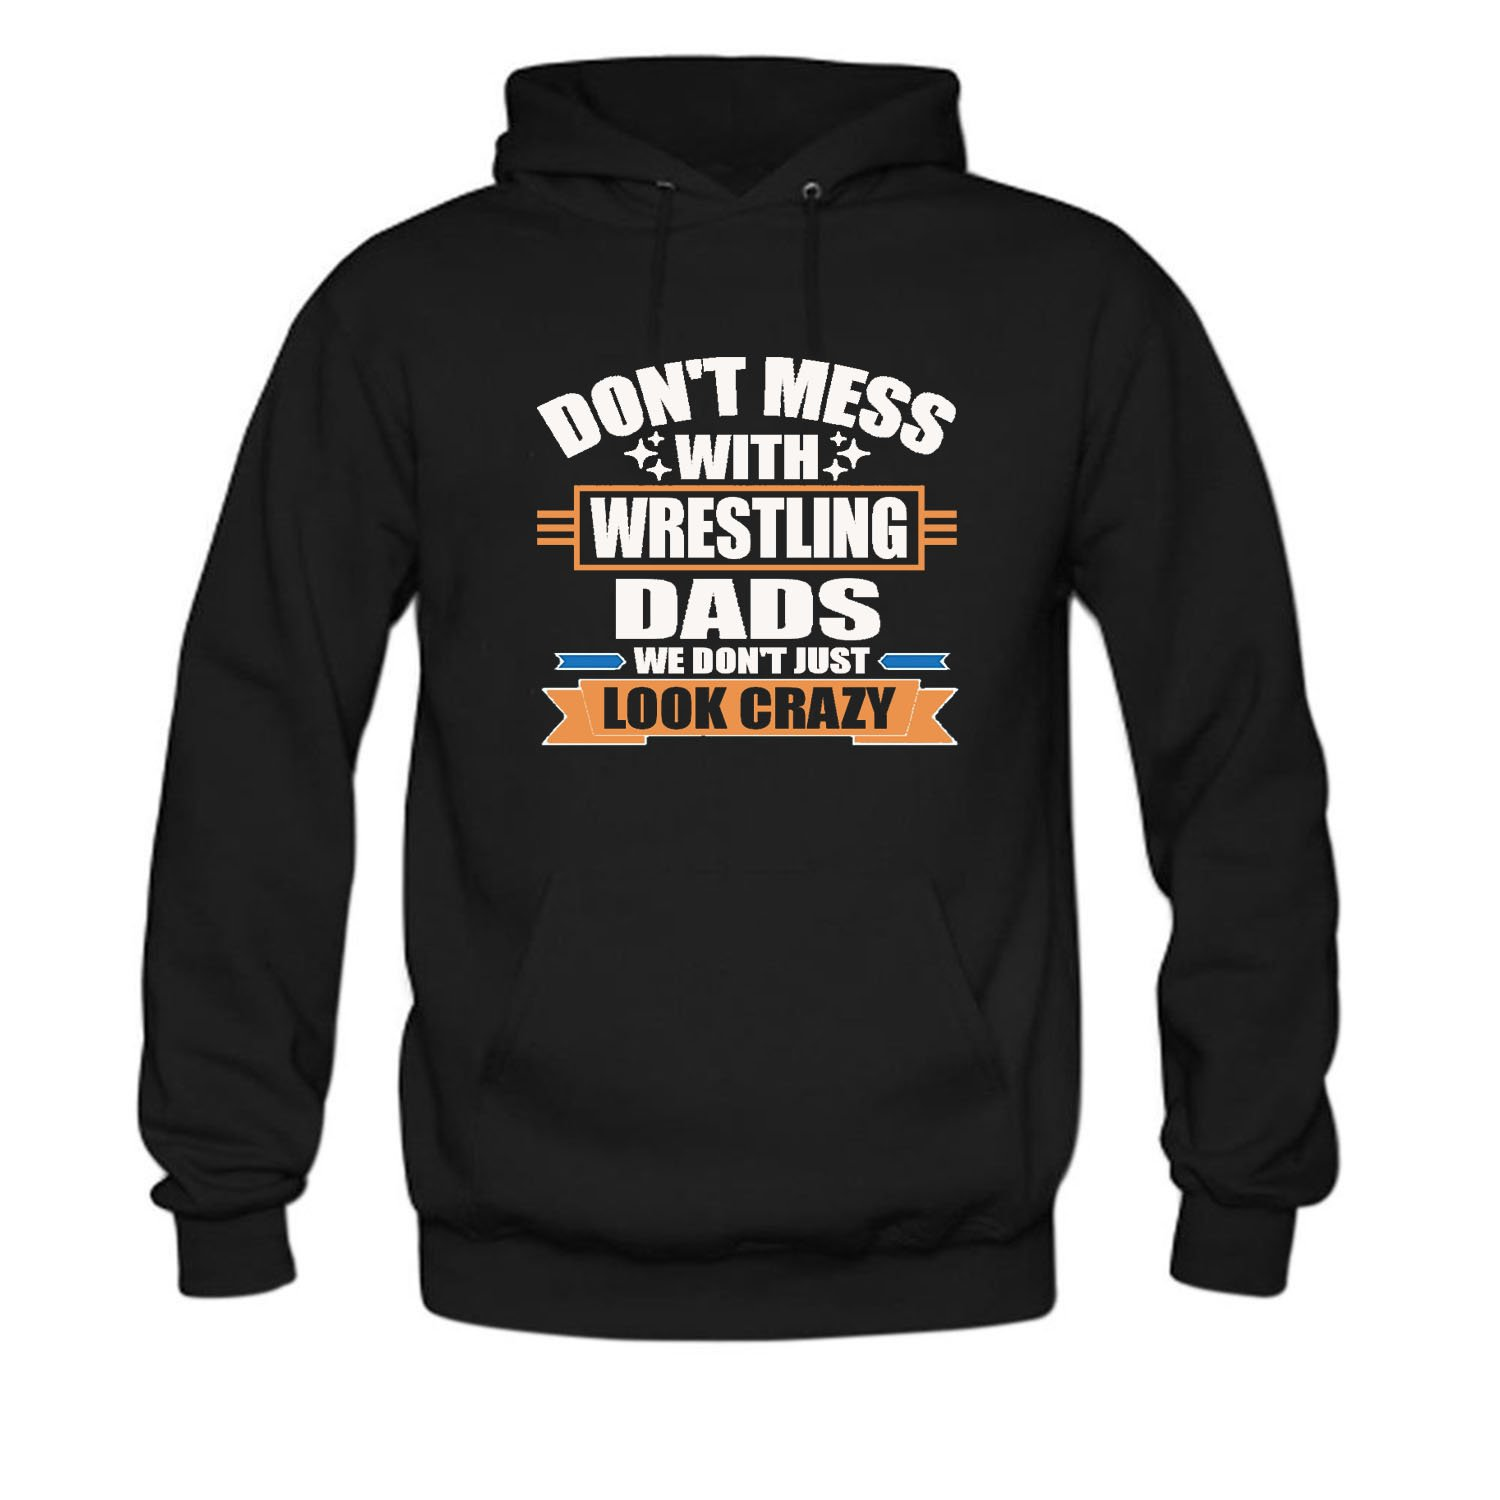 CCBING Women's Don't Mess With Wrestling Dads We Don't Just Look Crazy Hoodie